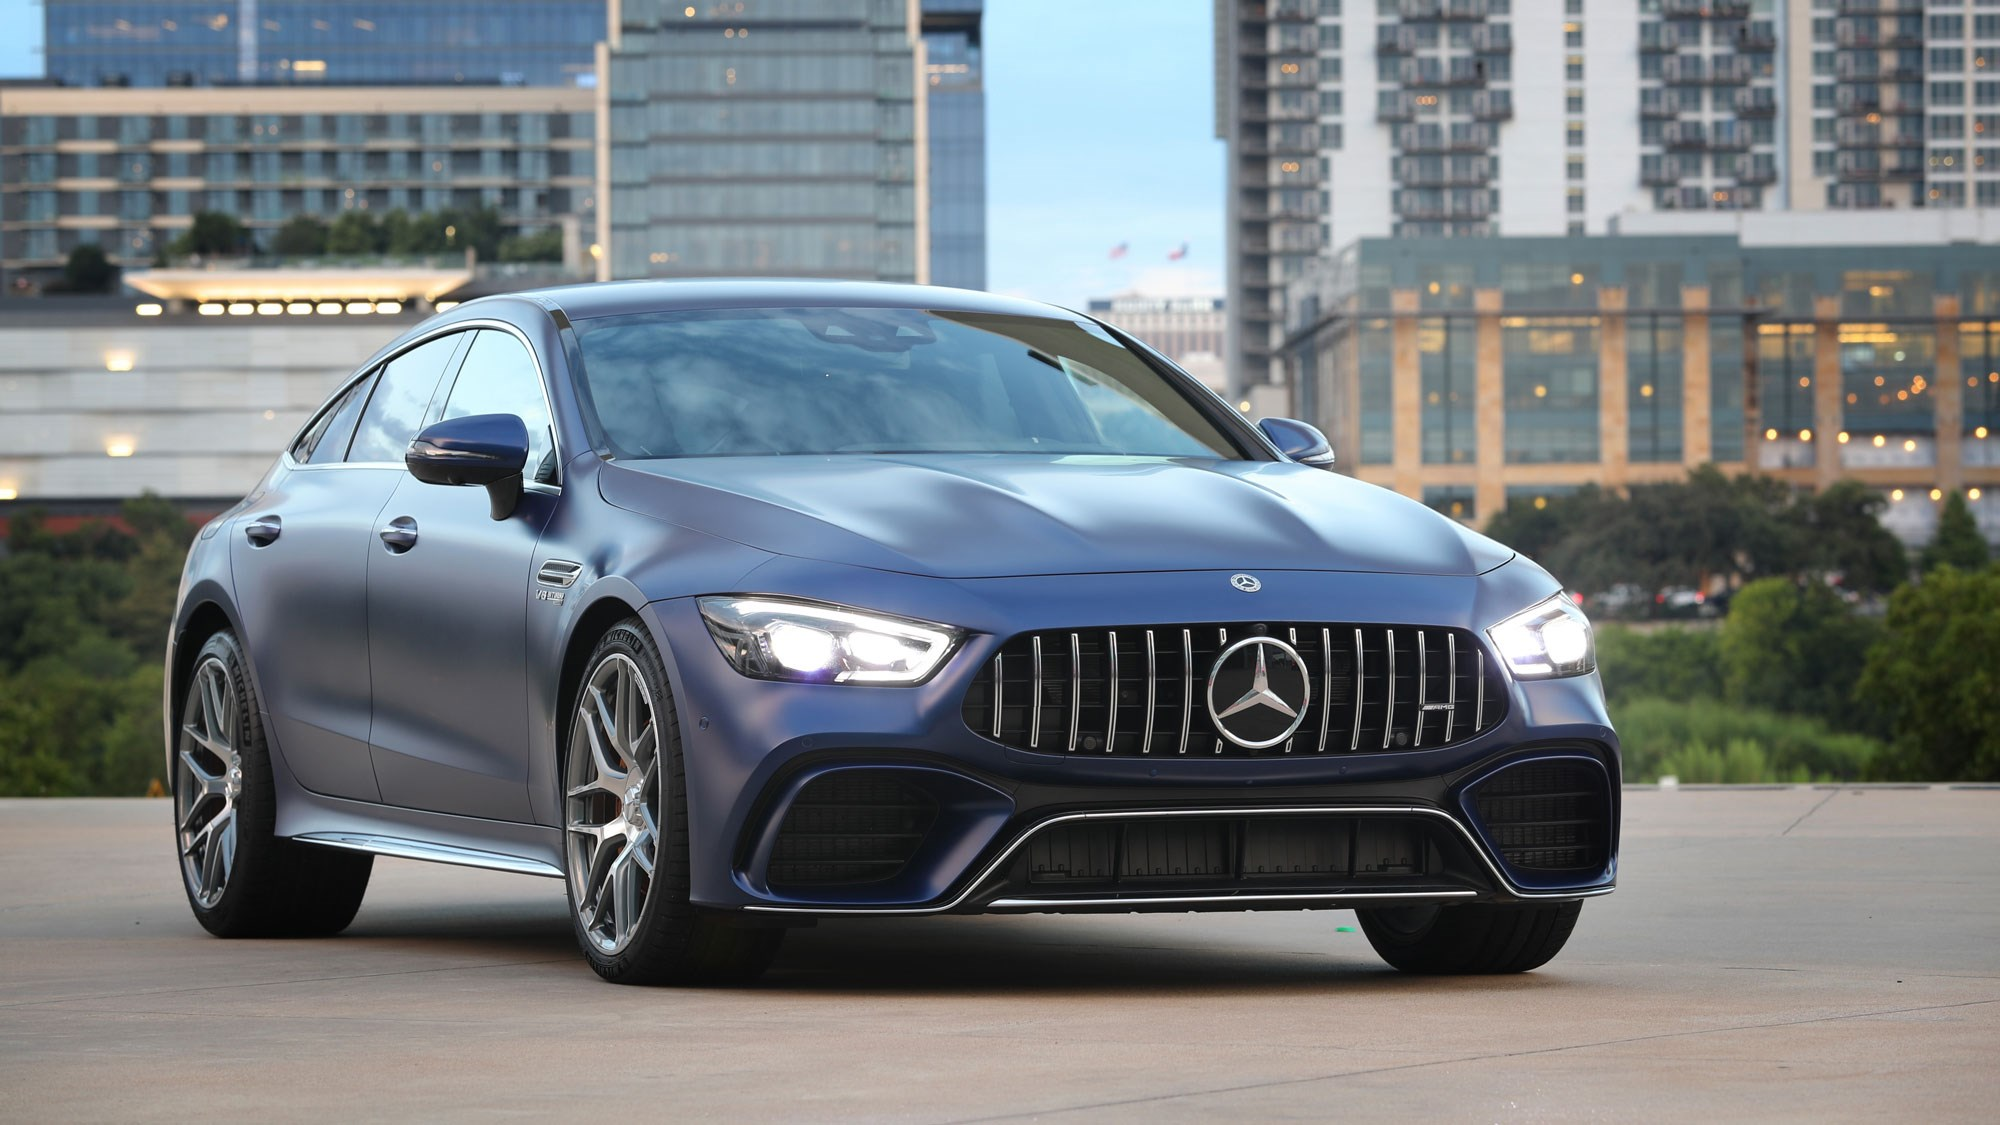 mercedes amg gt 63 s four door 2018 review ticking every box car magazine. Black Bedroom Furniture Sets. Home Design Ideas